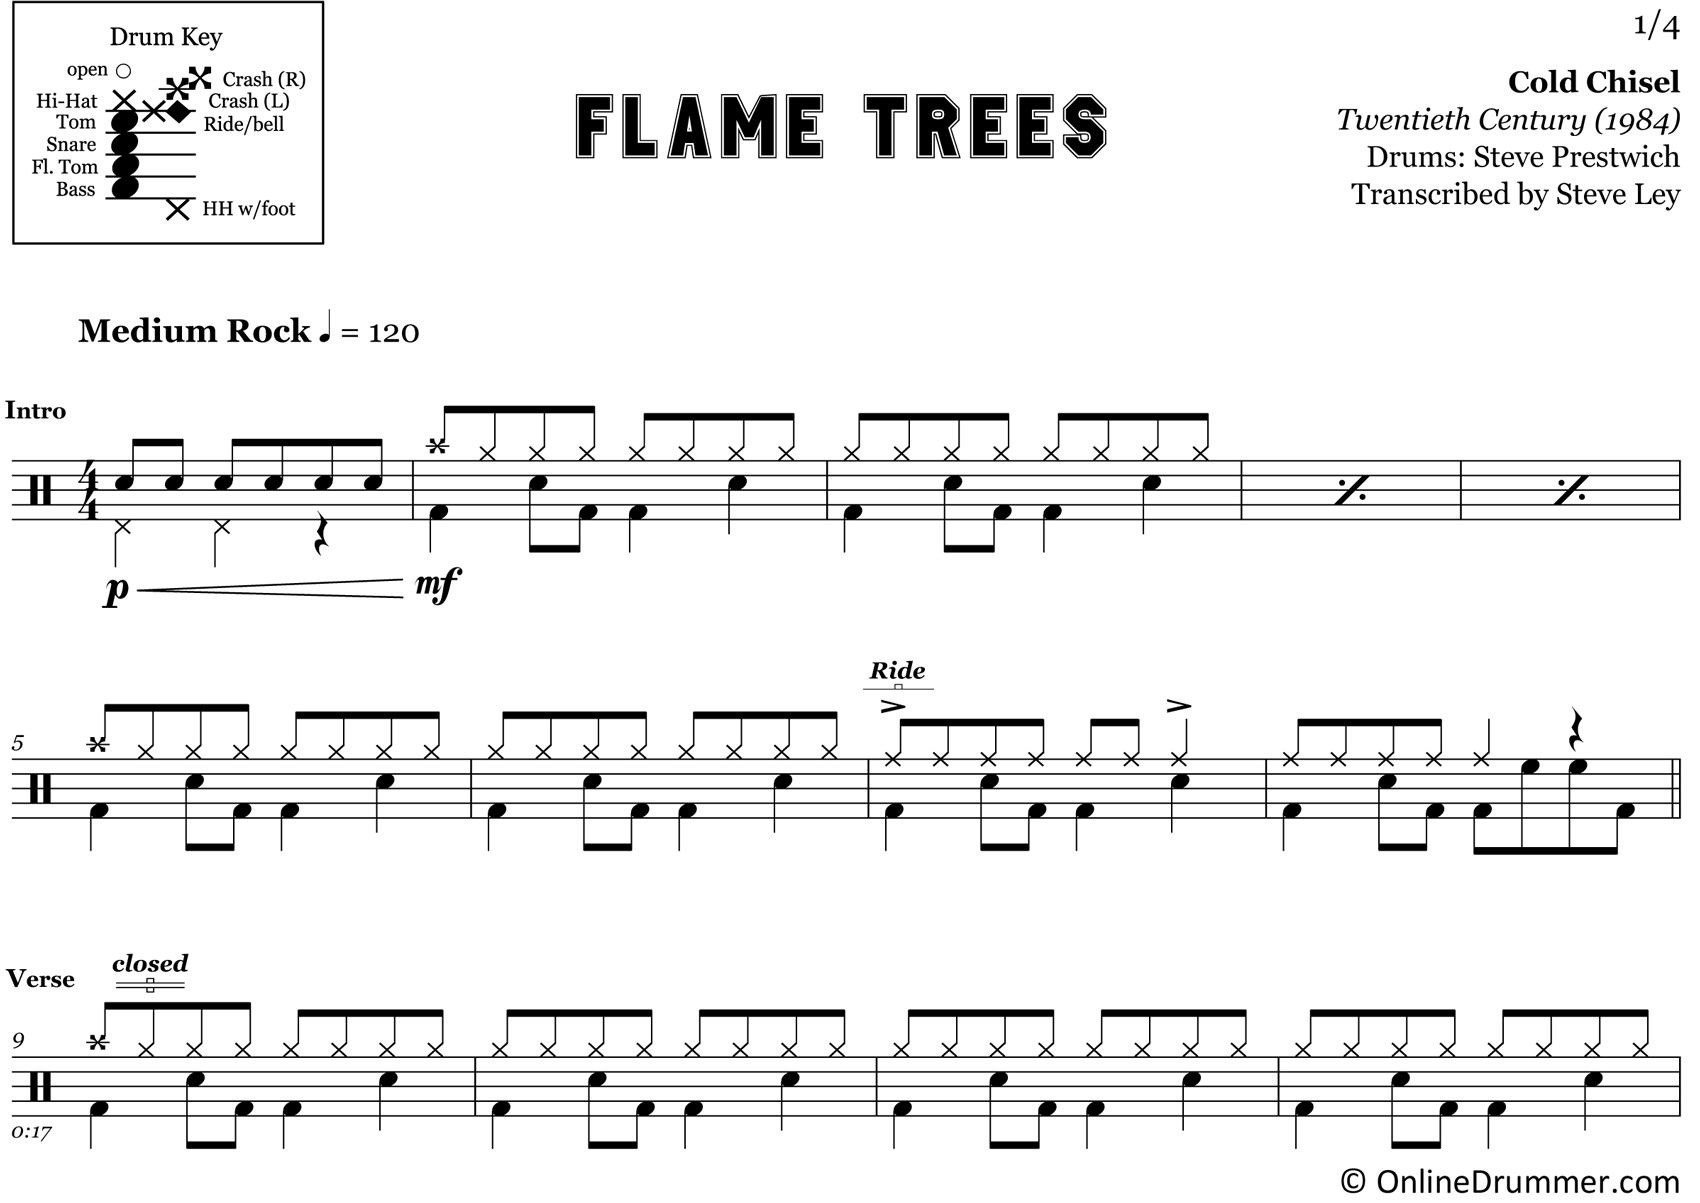 Flame Trees - Cold Chisel - Drum Sheet Music